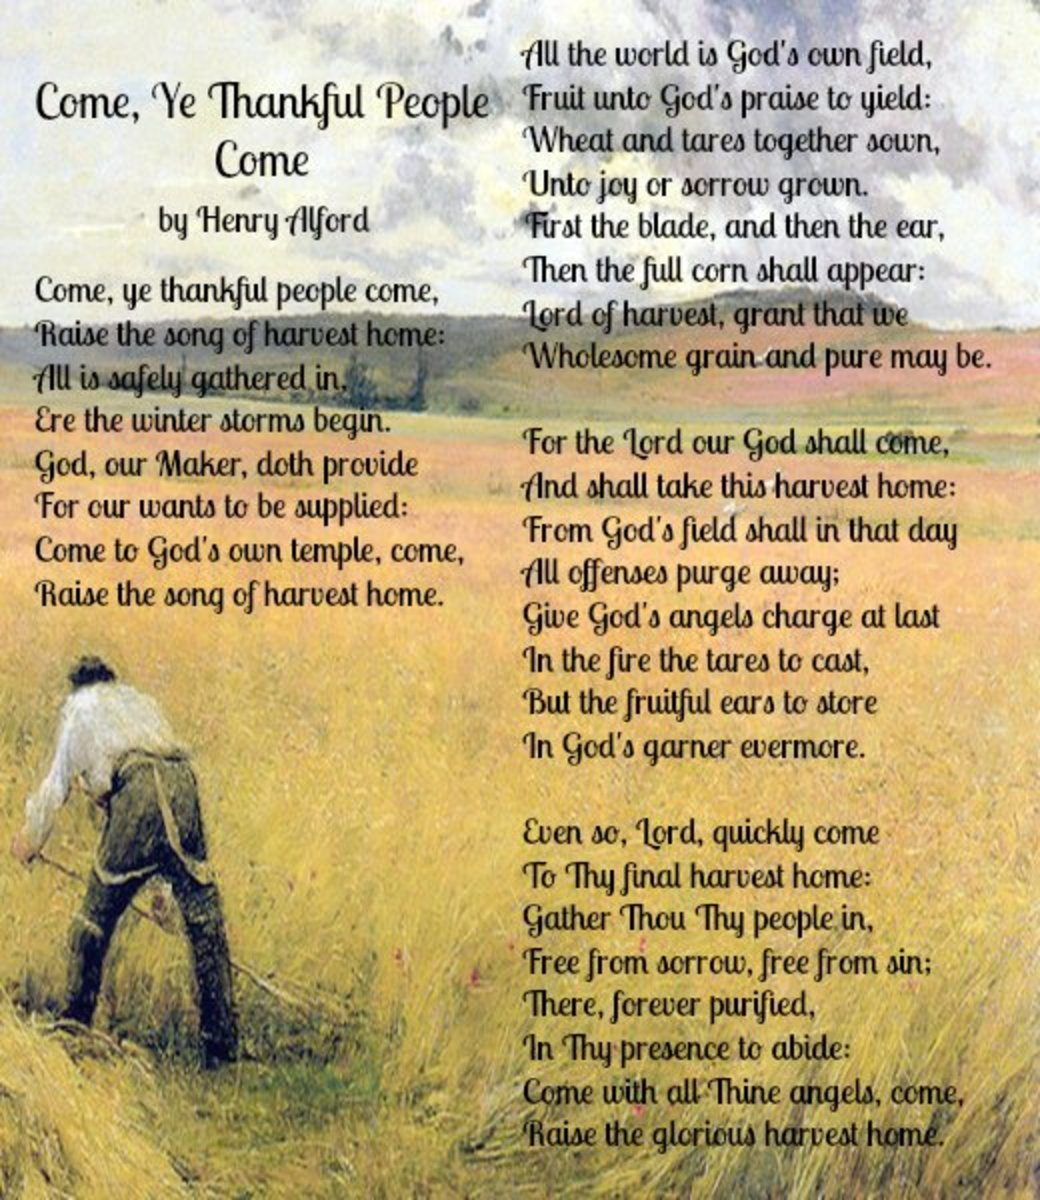 'Come, Ye Thankful People, Come' Poem by Henry Alford